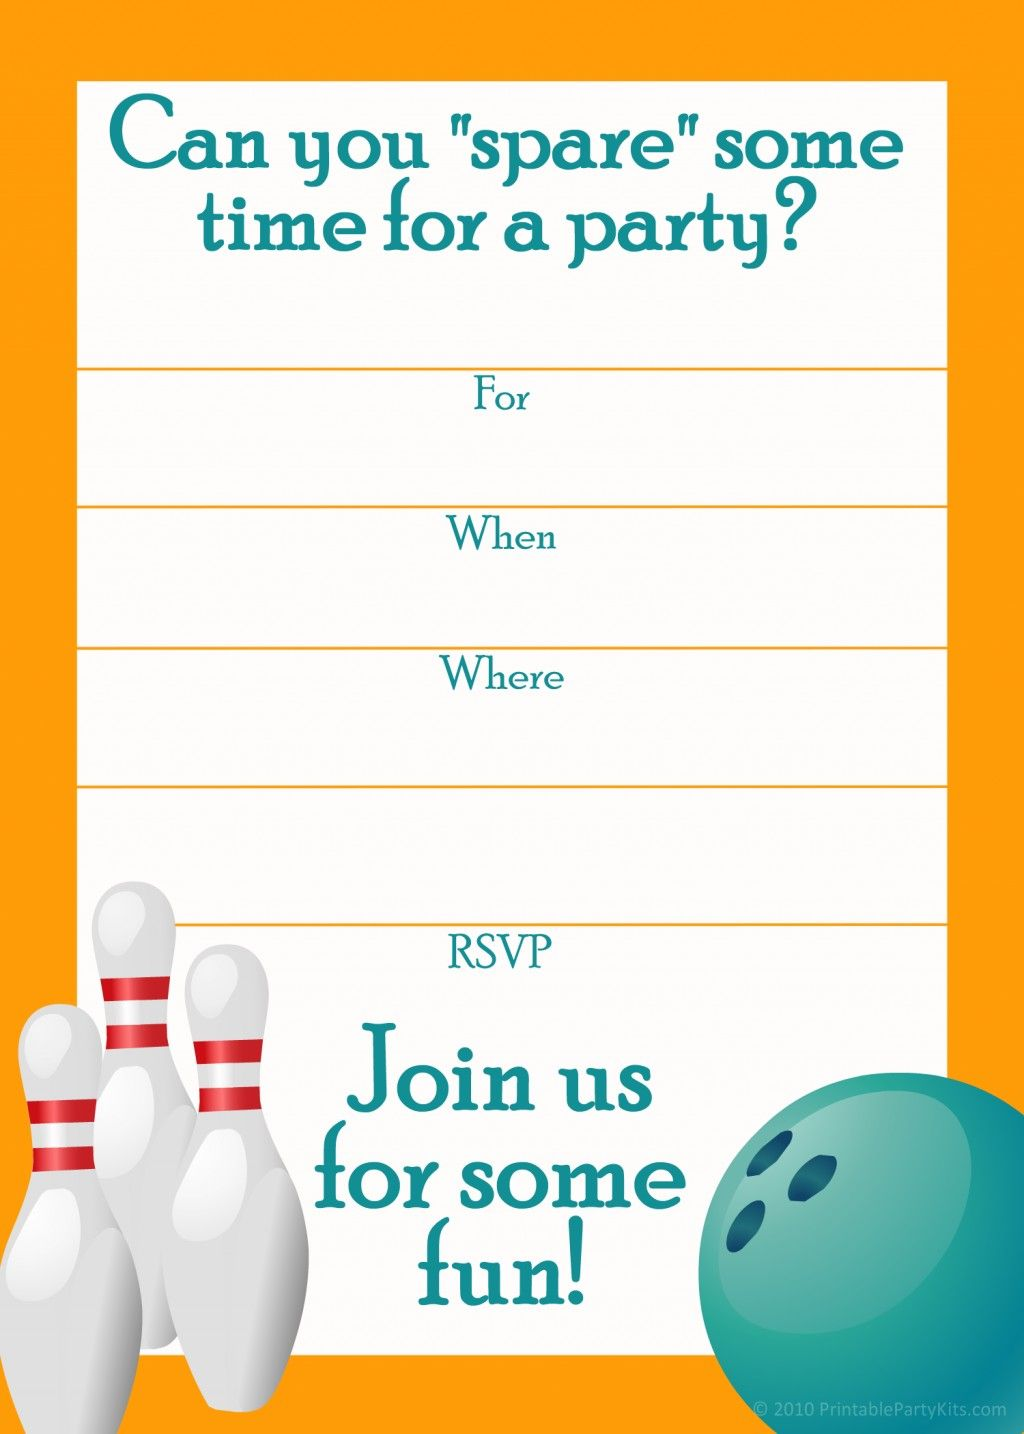 Free Printable Sports Birthday Party Invitations Templates – Free Printable Party Invitations for Kids Birthday Parties